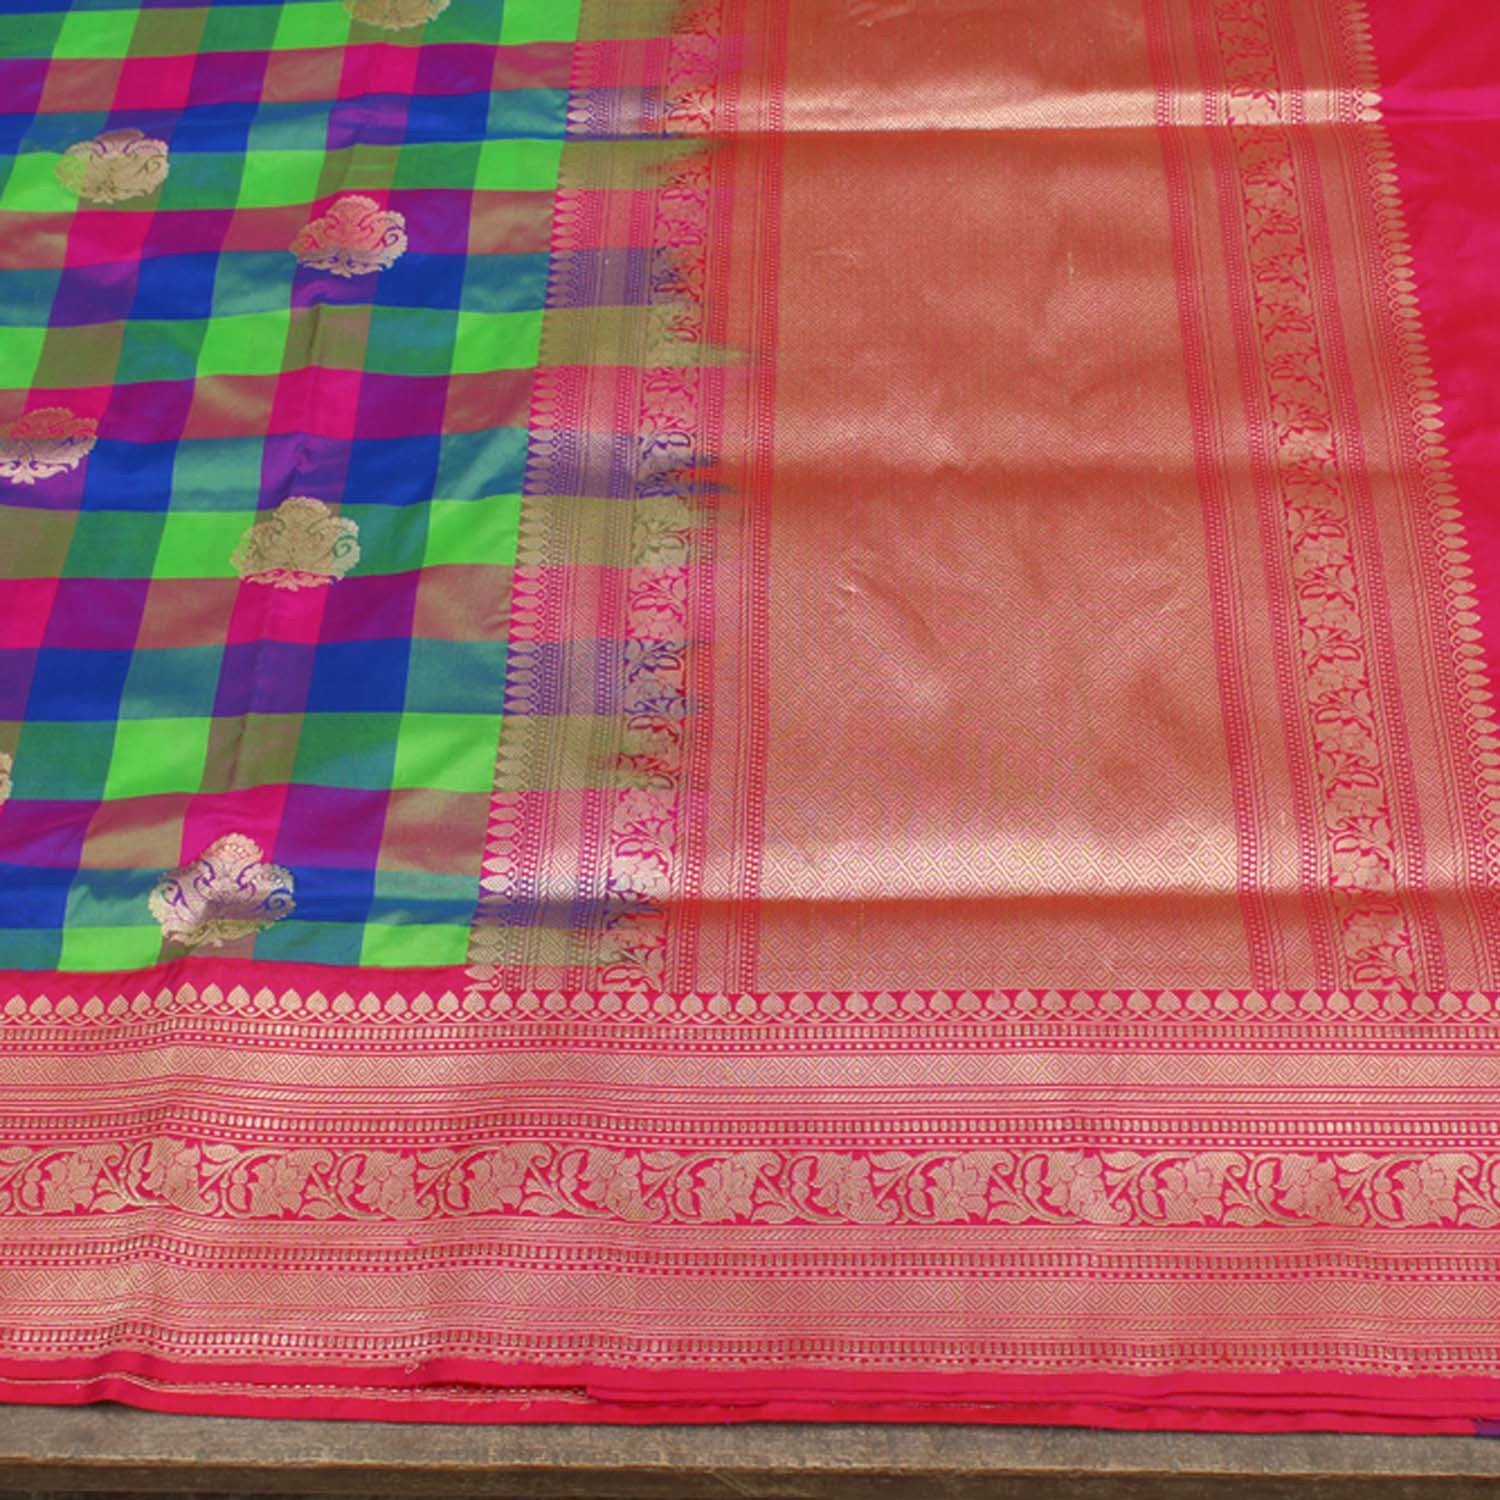 Checkered Pure Katan Silk Handloom Banarasi Saree - Tilfi - 3